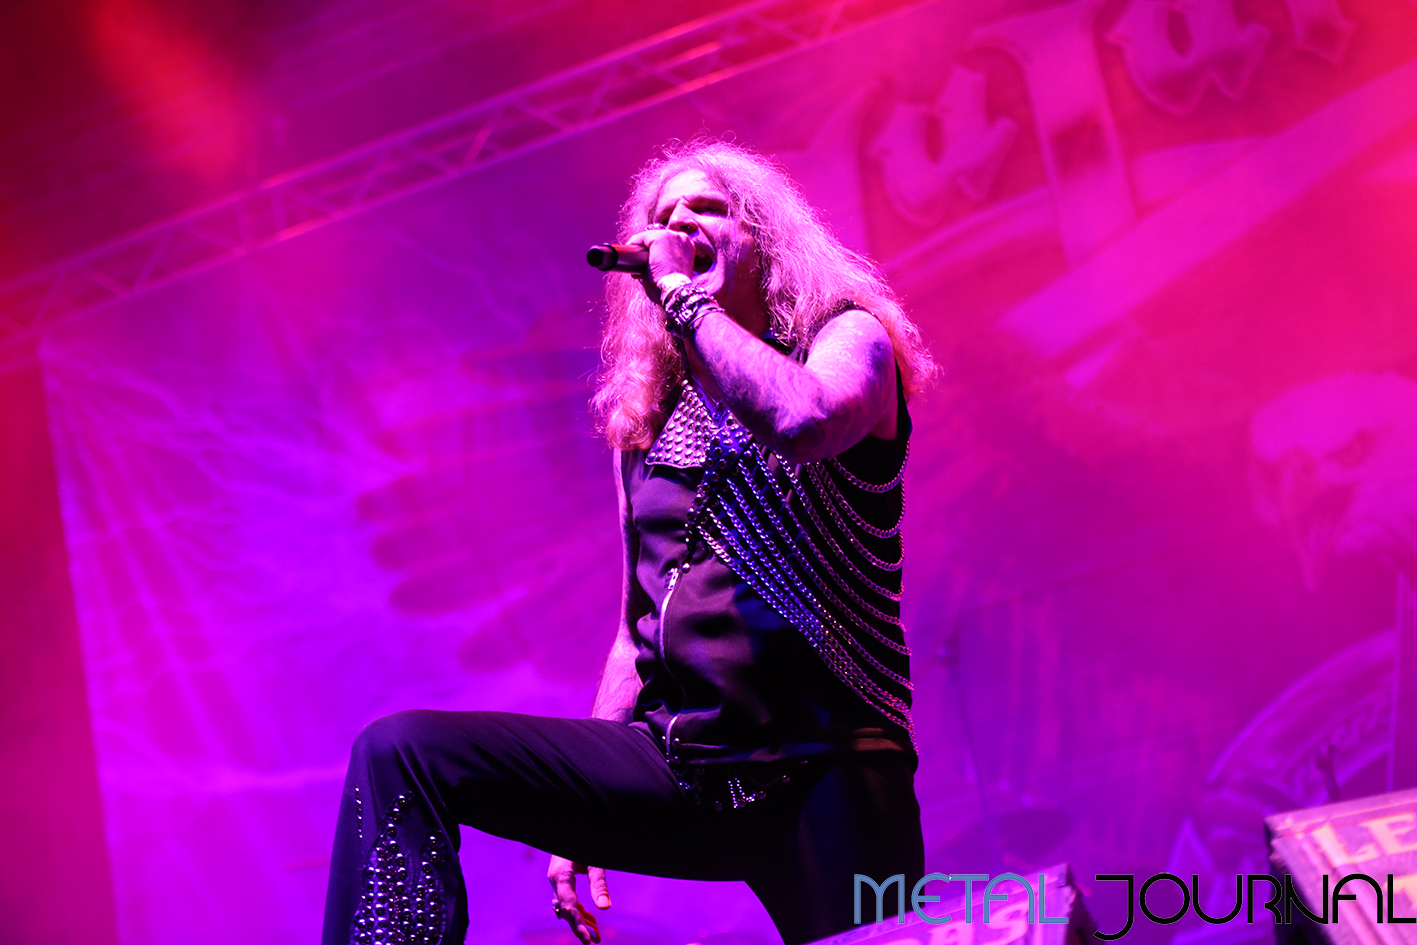 lujuria - leyendas del rock 2019 metal journal pic 3